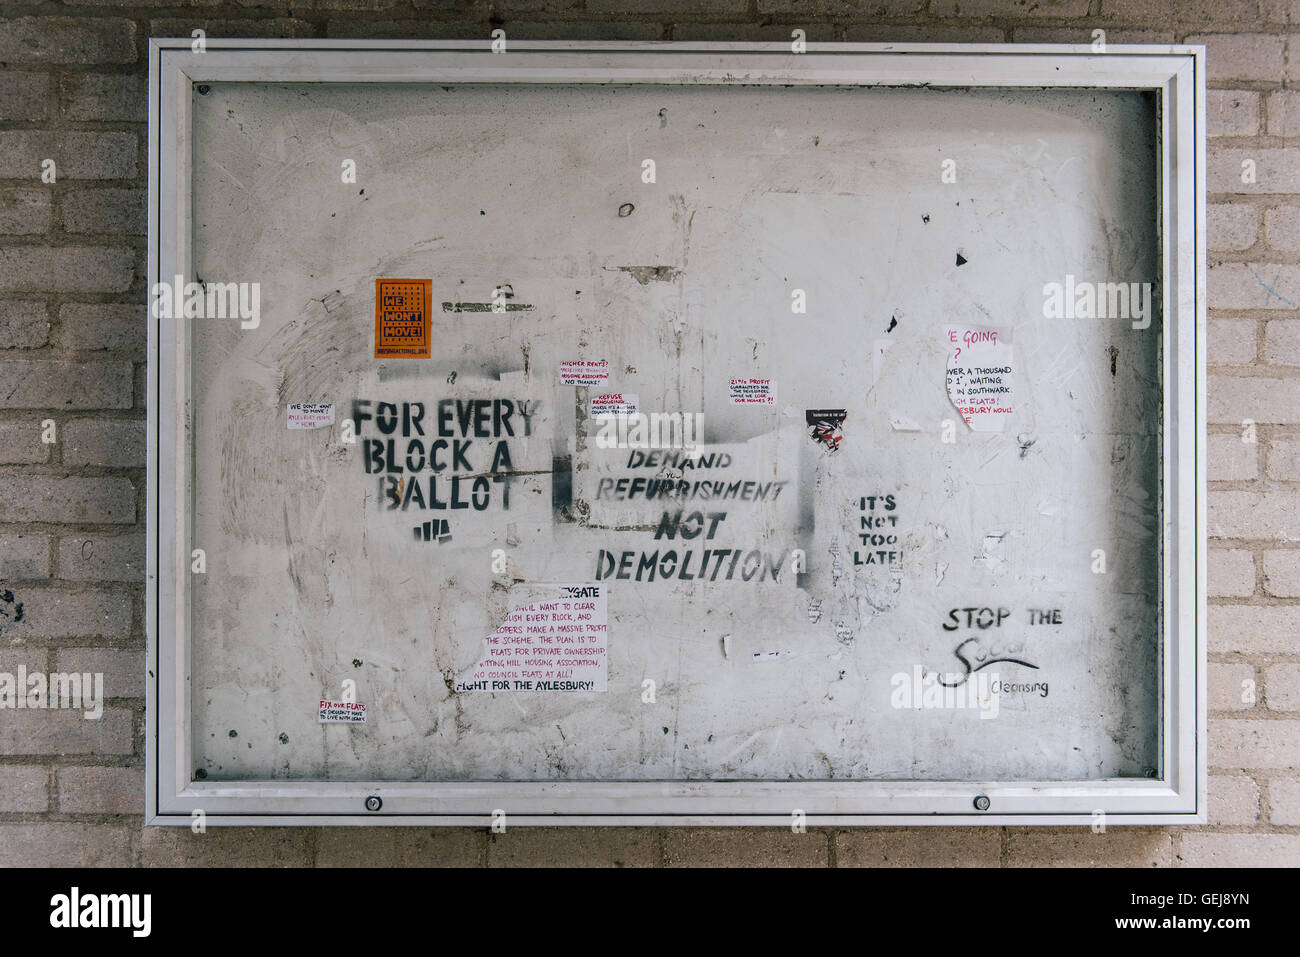 Signs on the Aylesbury Estate protesting Demolition - Stock Image